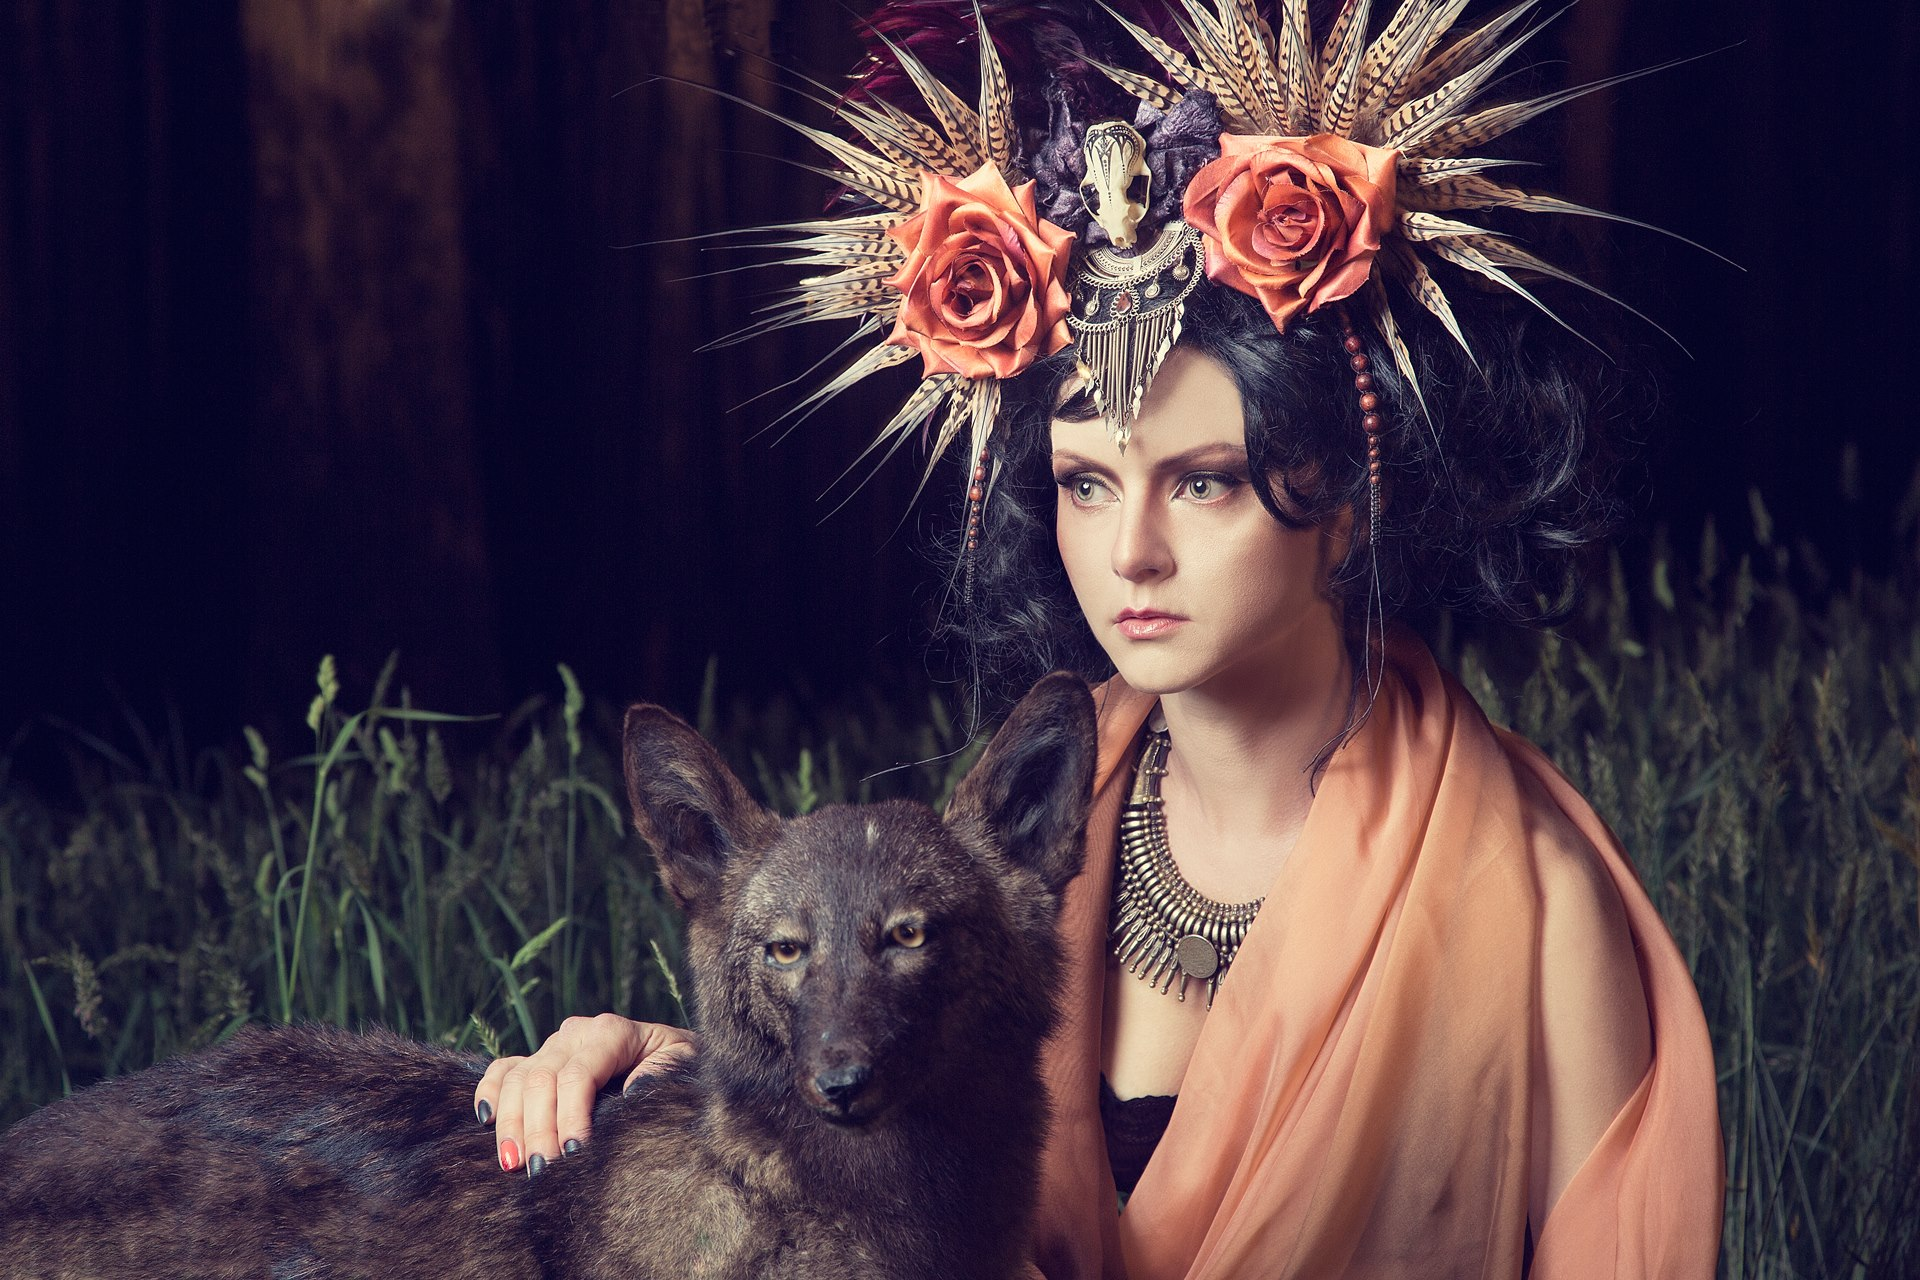 'Hecate'